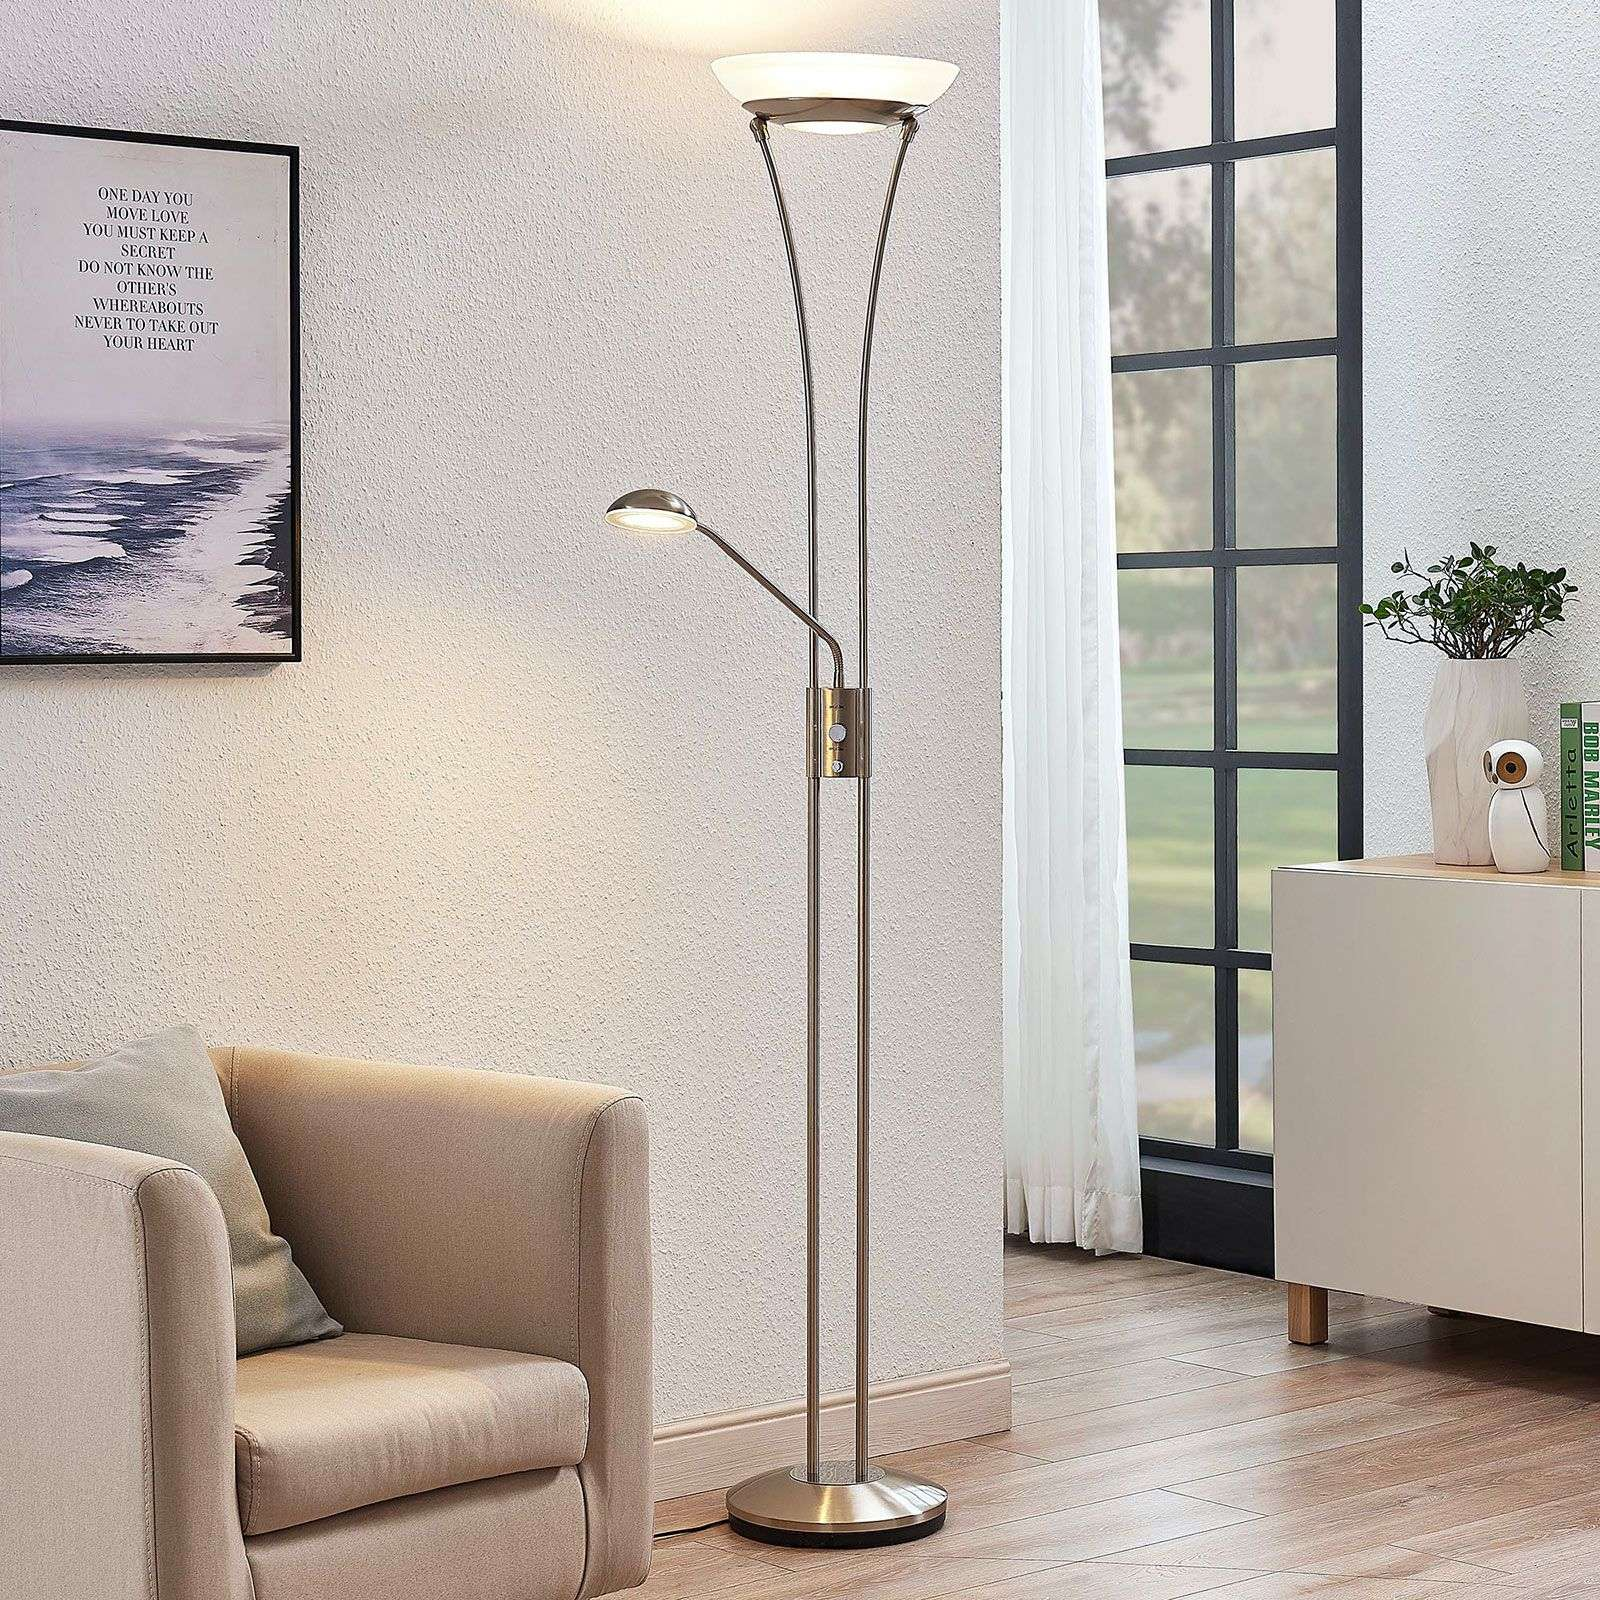 LED uplighter Amadou m. leeslamp, nikkel